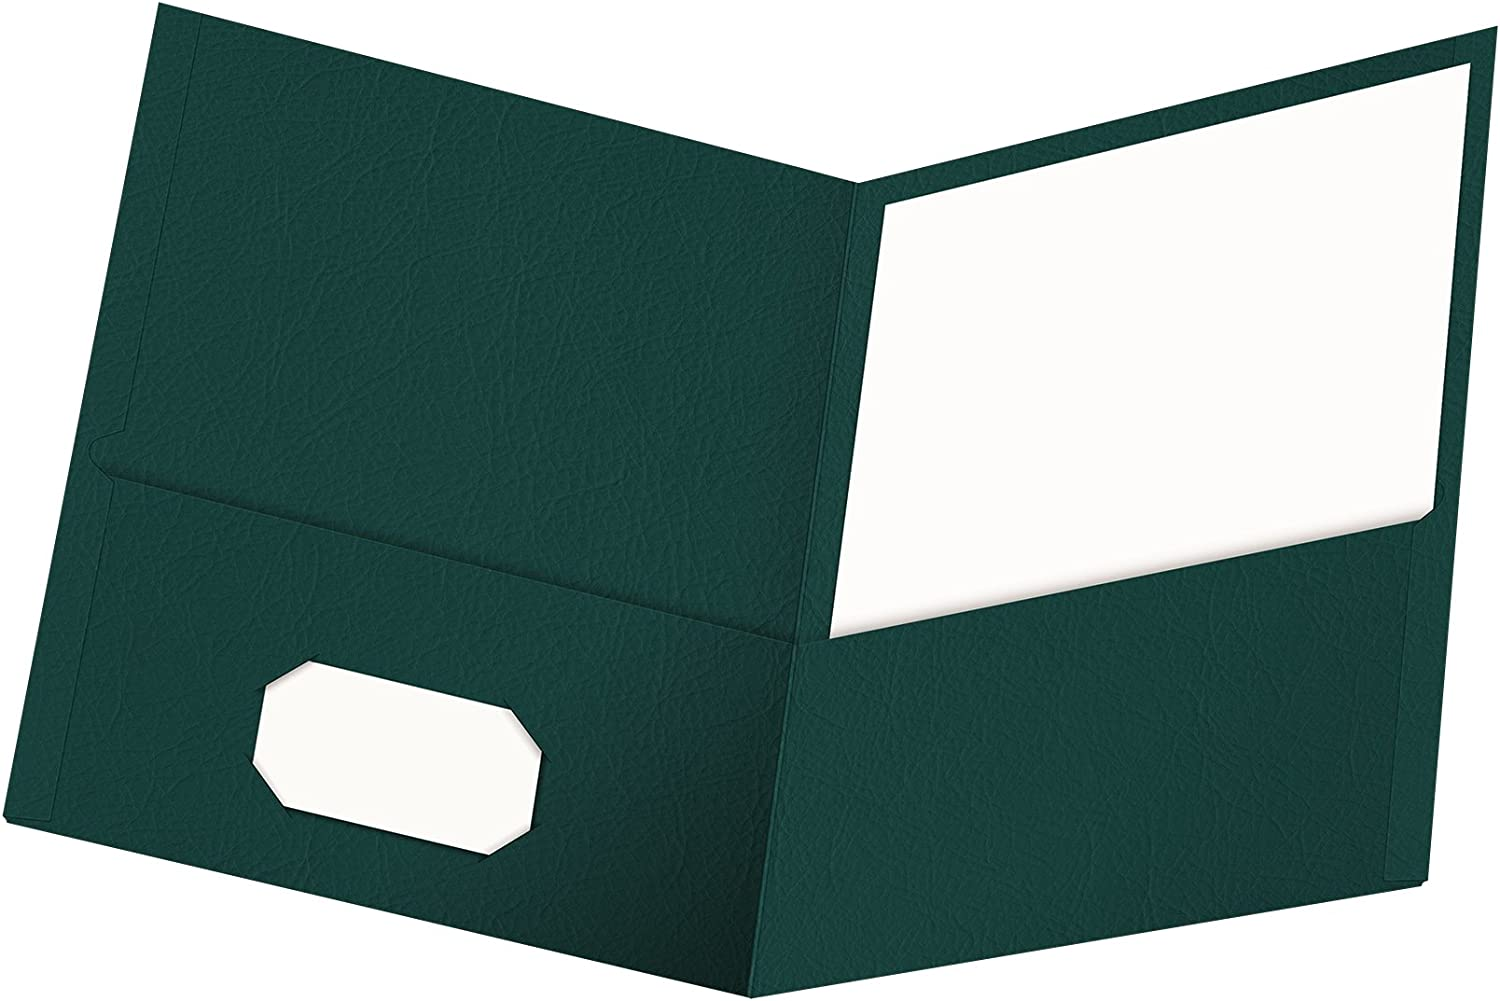 Oxford Twin-Pocket Folders Textured Paper Size Ranking free shipping TOP12 Teal Letter H